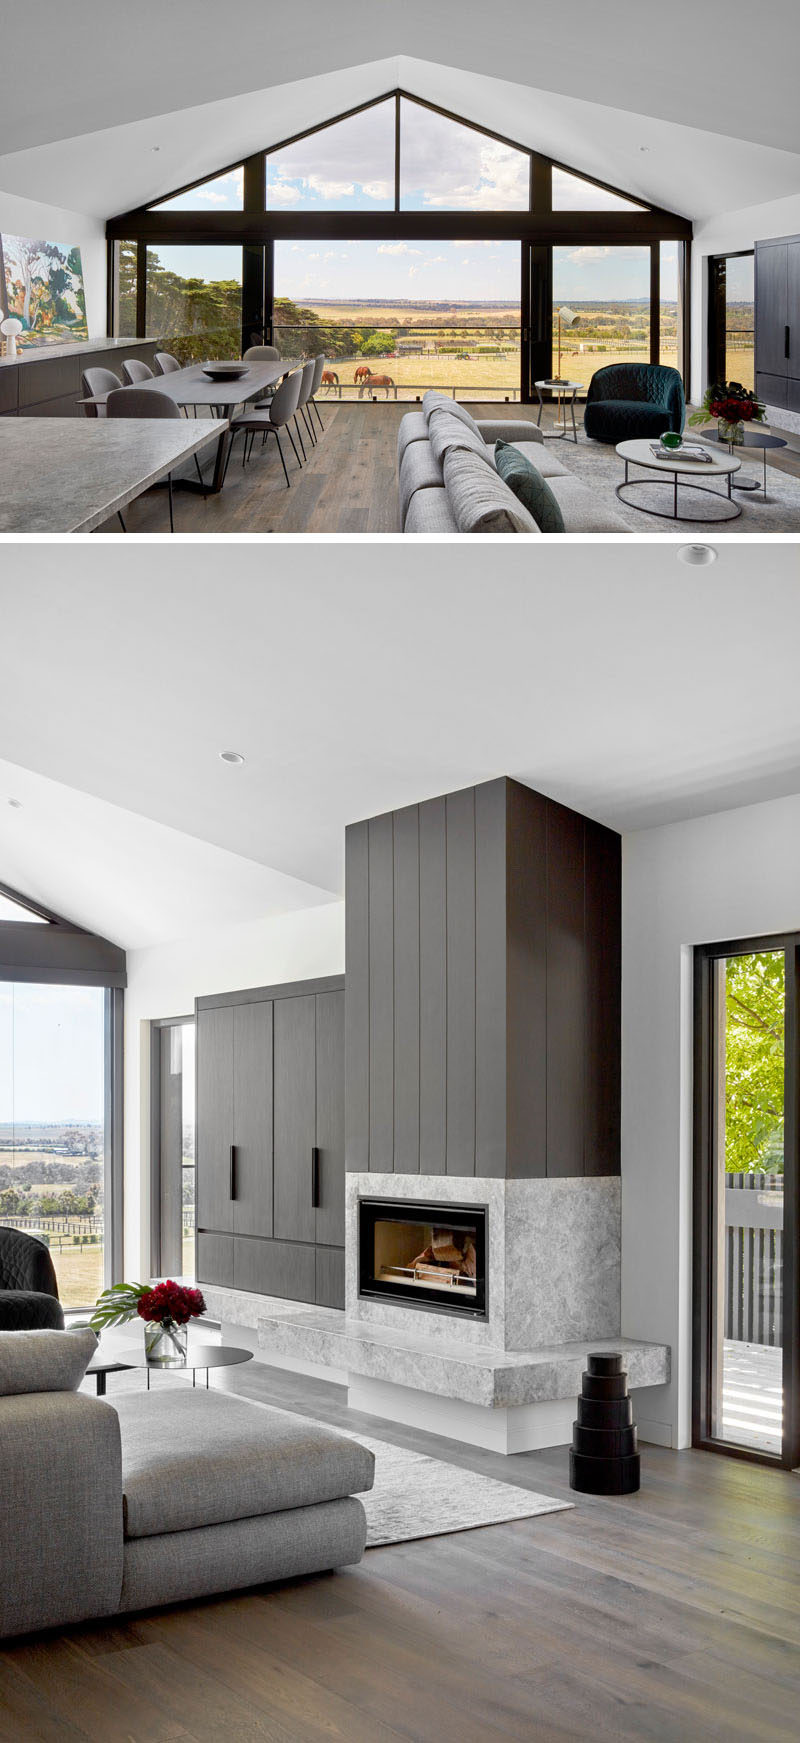 This modern open plan interior has a gabled ceiling and a wall full of windows with a large sliding door that can opened to let the fresh air in. The couch in the living room is focused on the fireplace, which adds warmth on a cool night. #Windows #OpenPlanInterior #ModernInterior #Fireplace